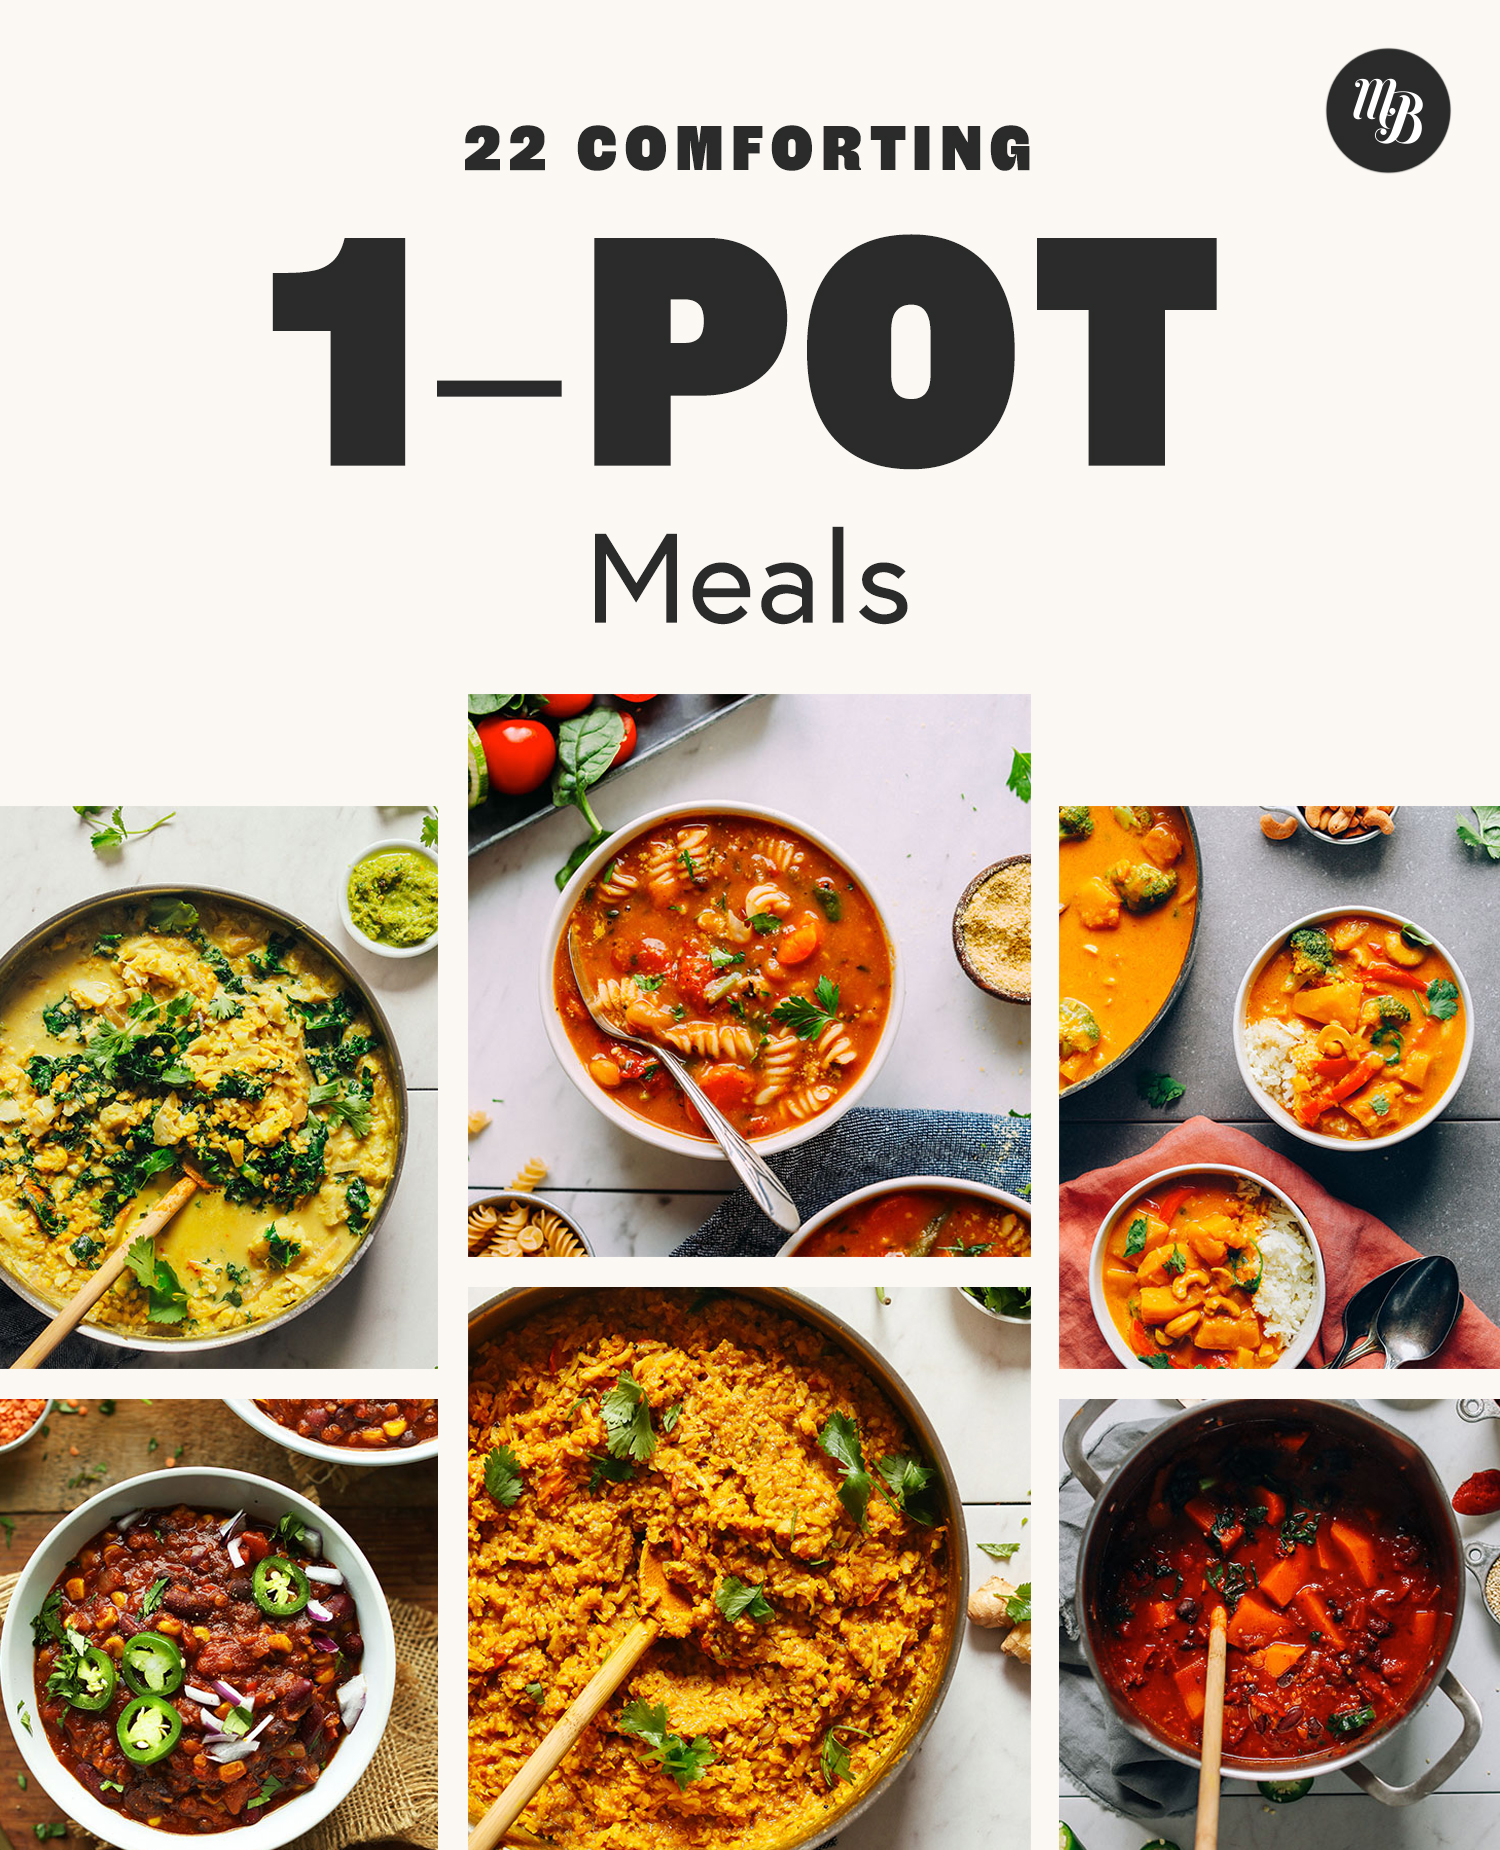 Bowls and pots of soups, curries, and chili for comforting 1 pot meals